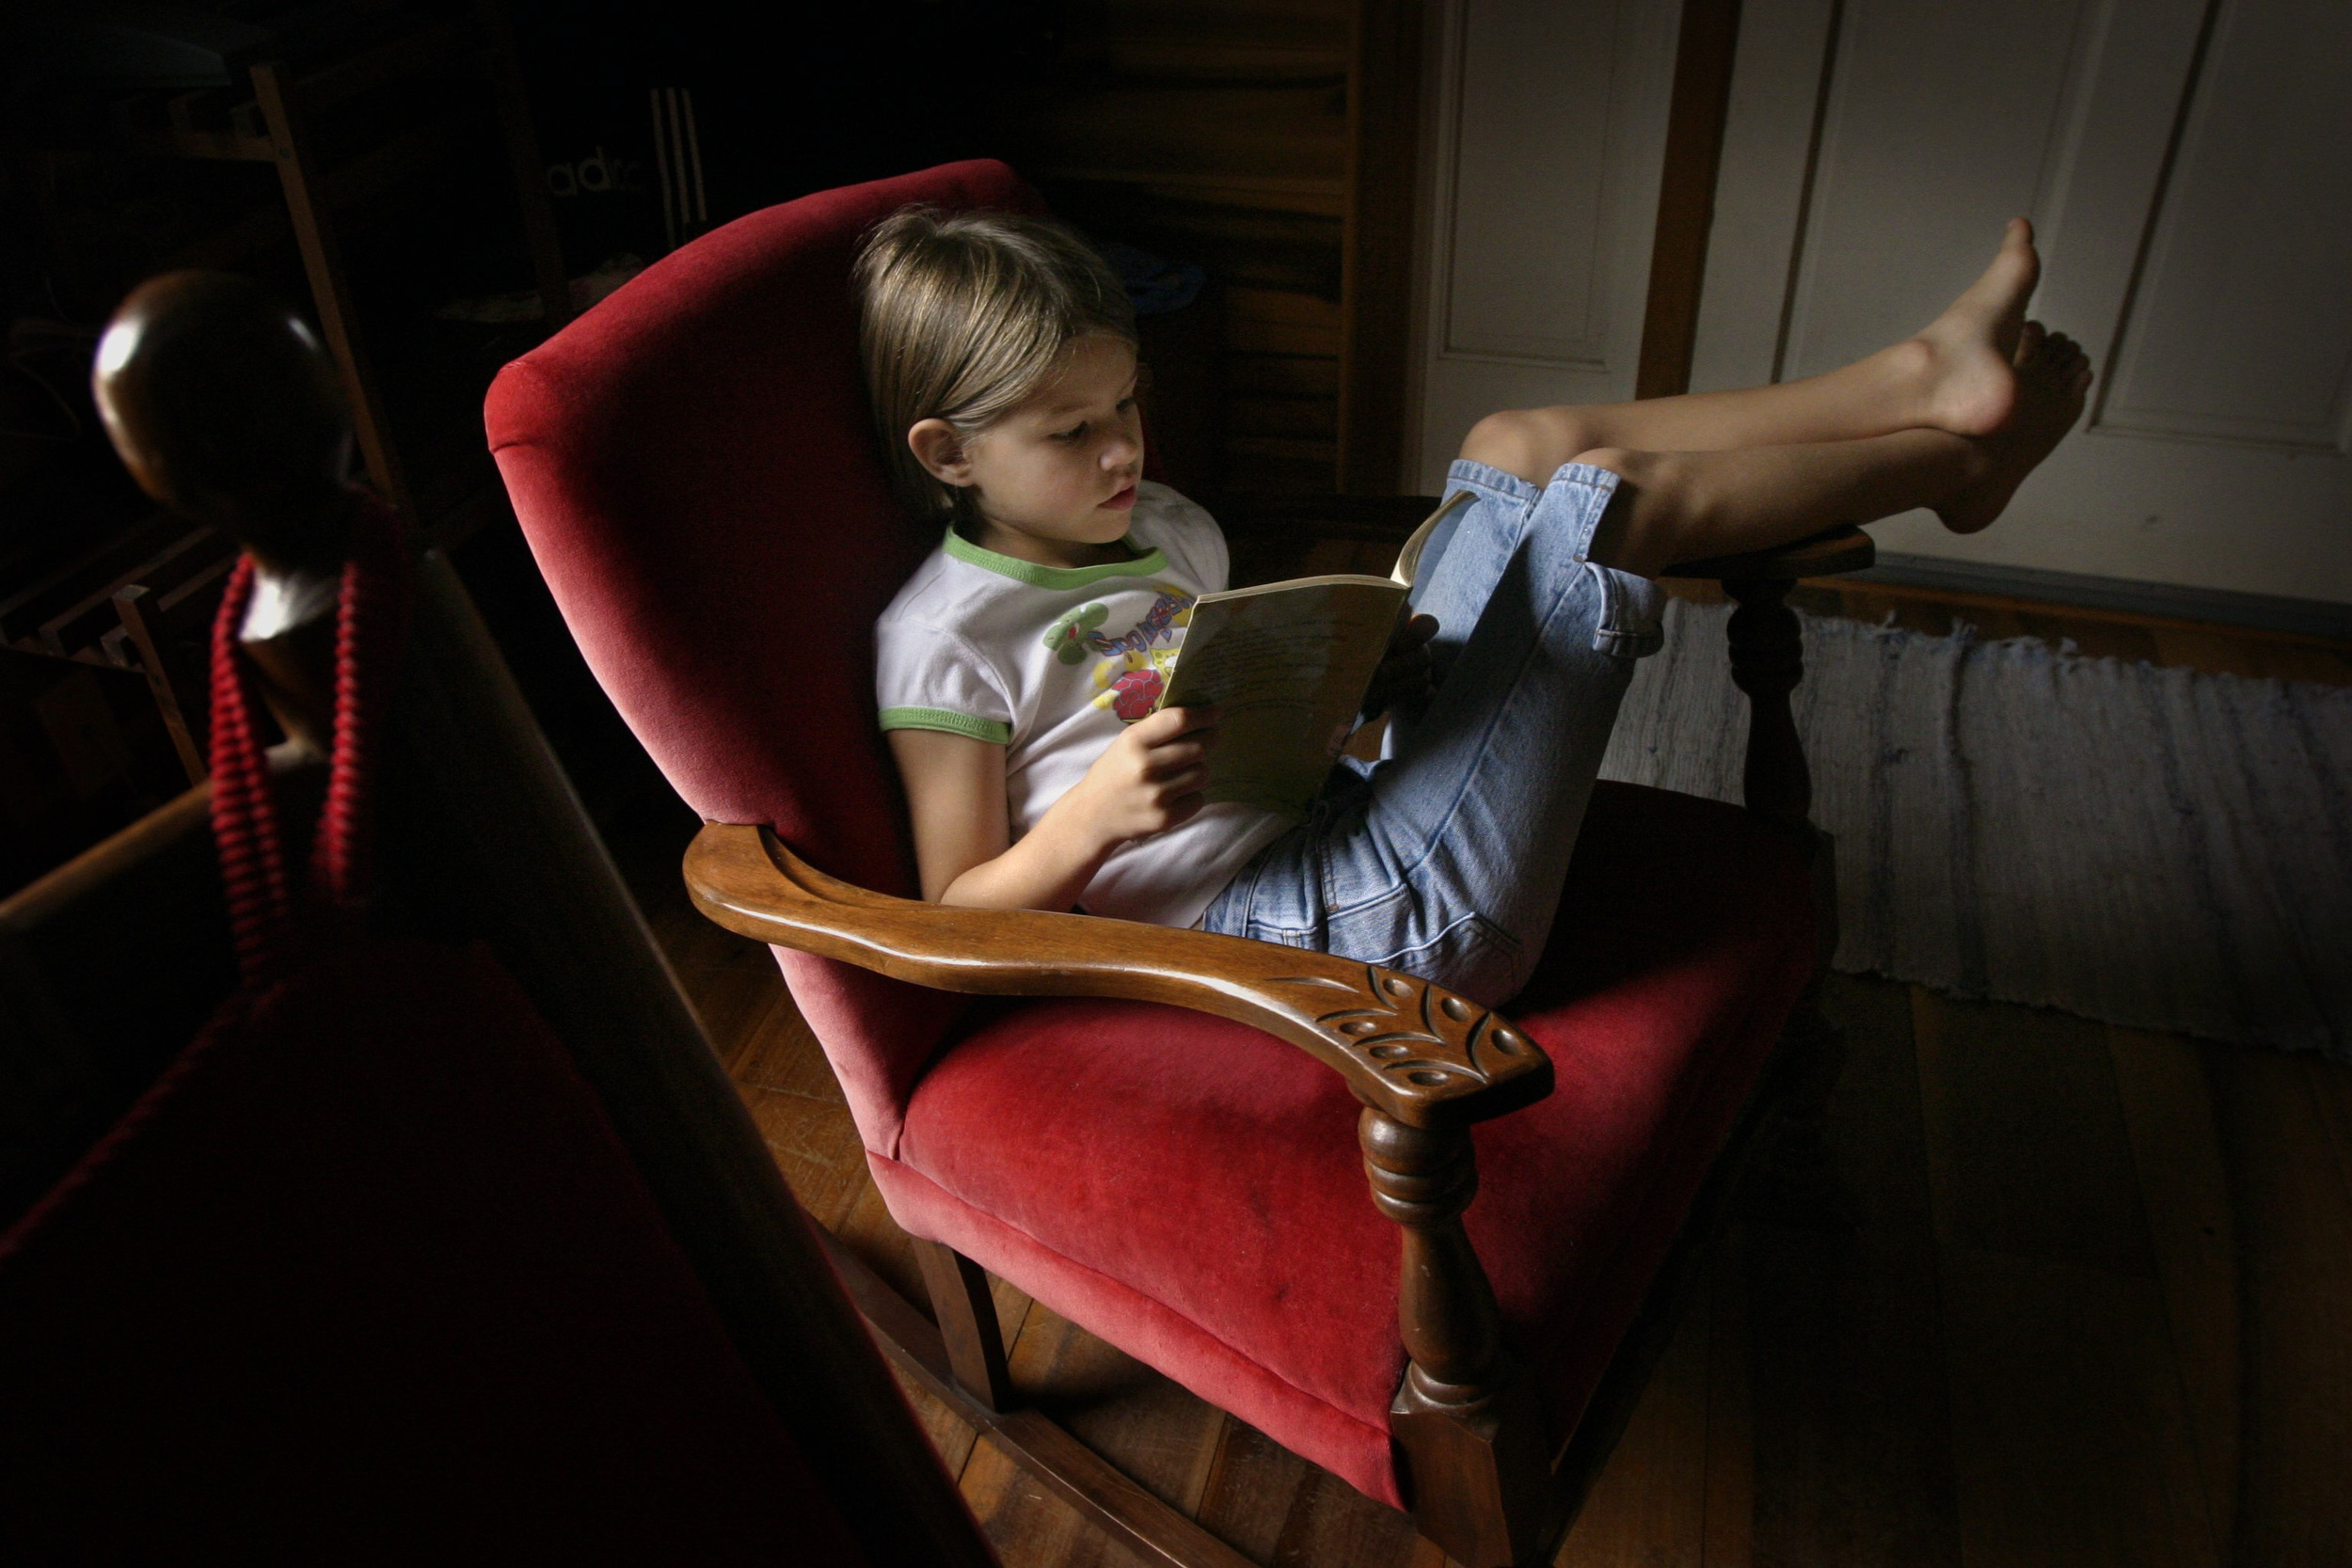 Anna Stewart Burdette, 7, lounges in a comfortable chair near the window during reading time, a part of her homeschool day.